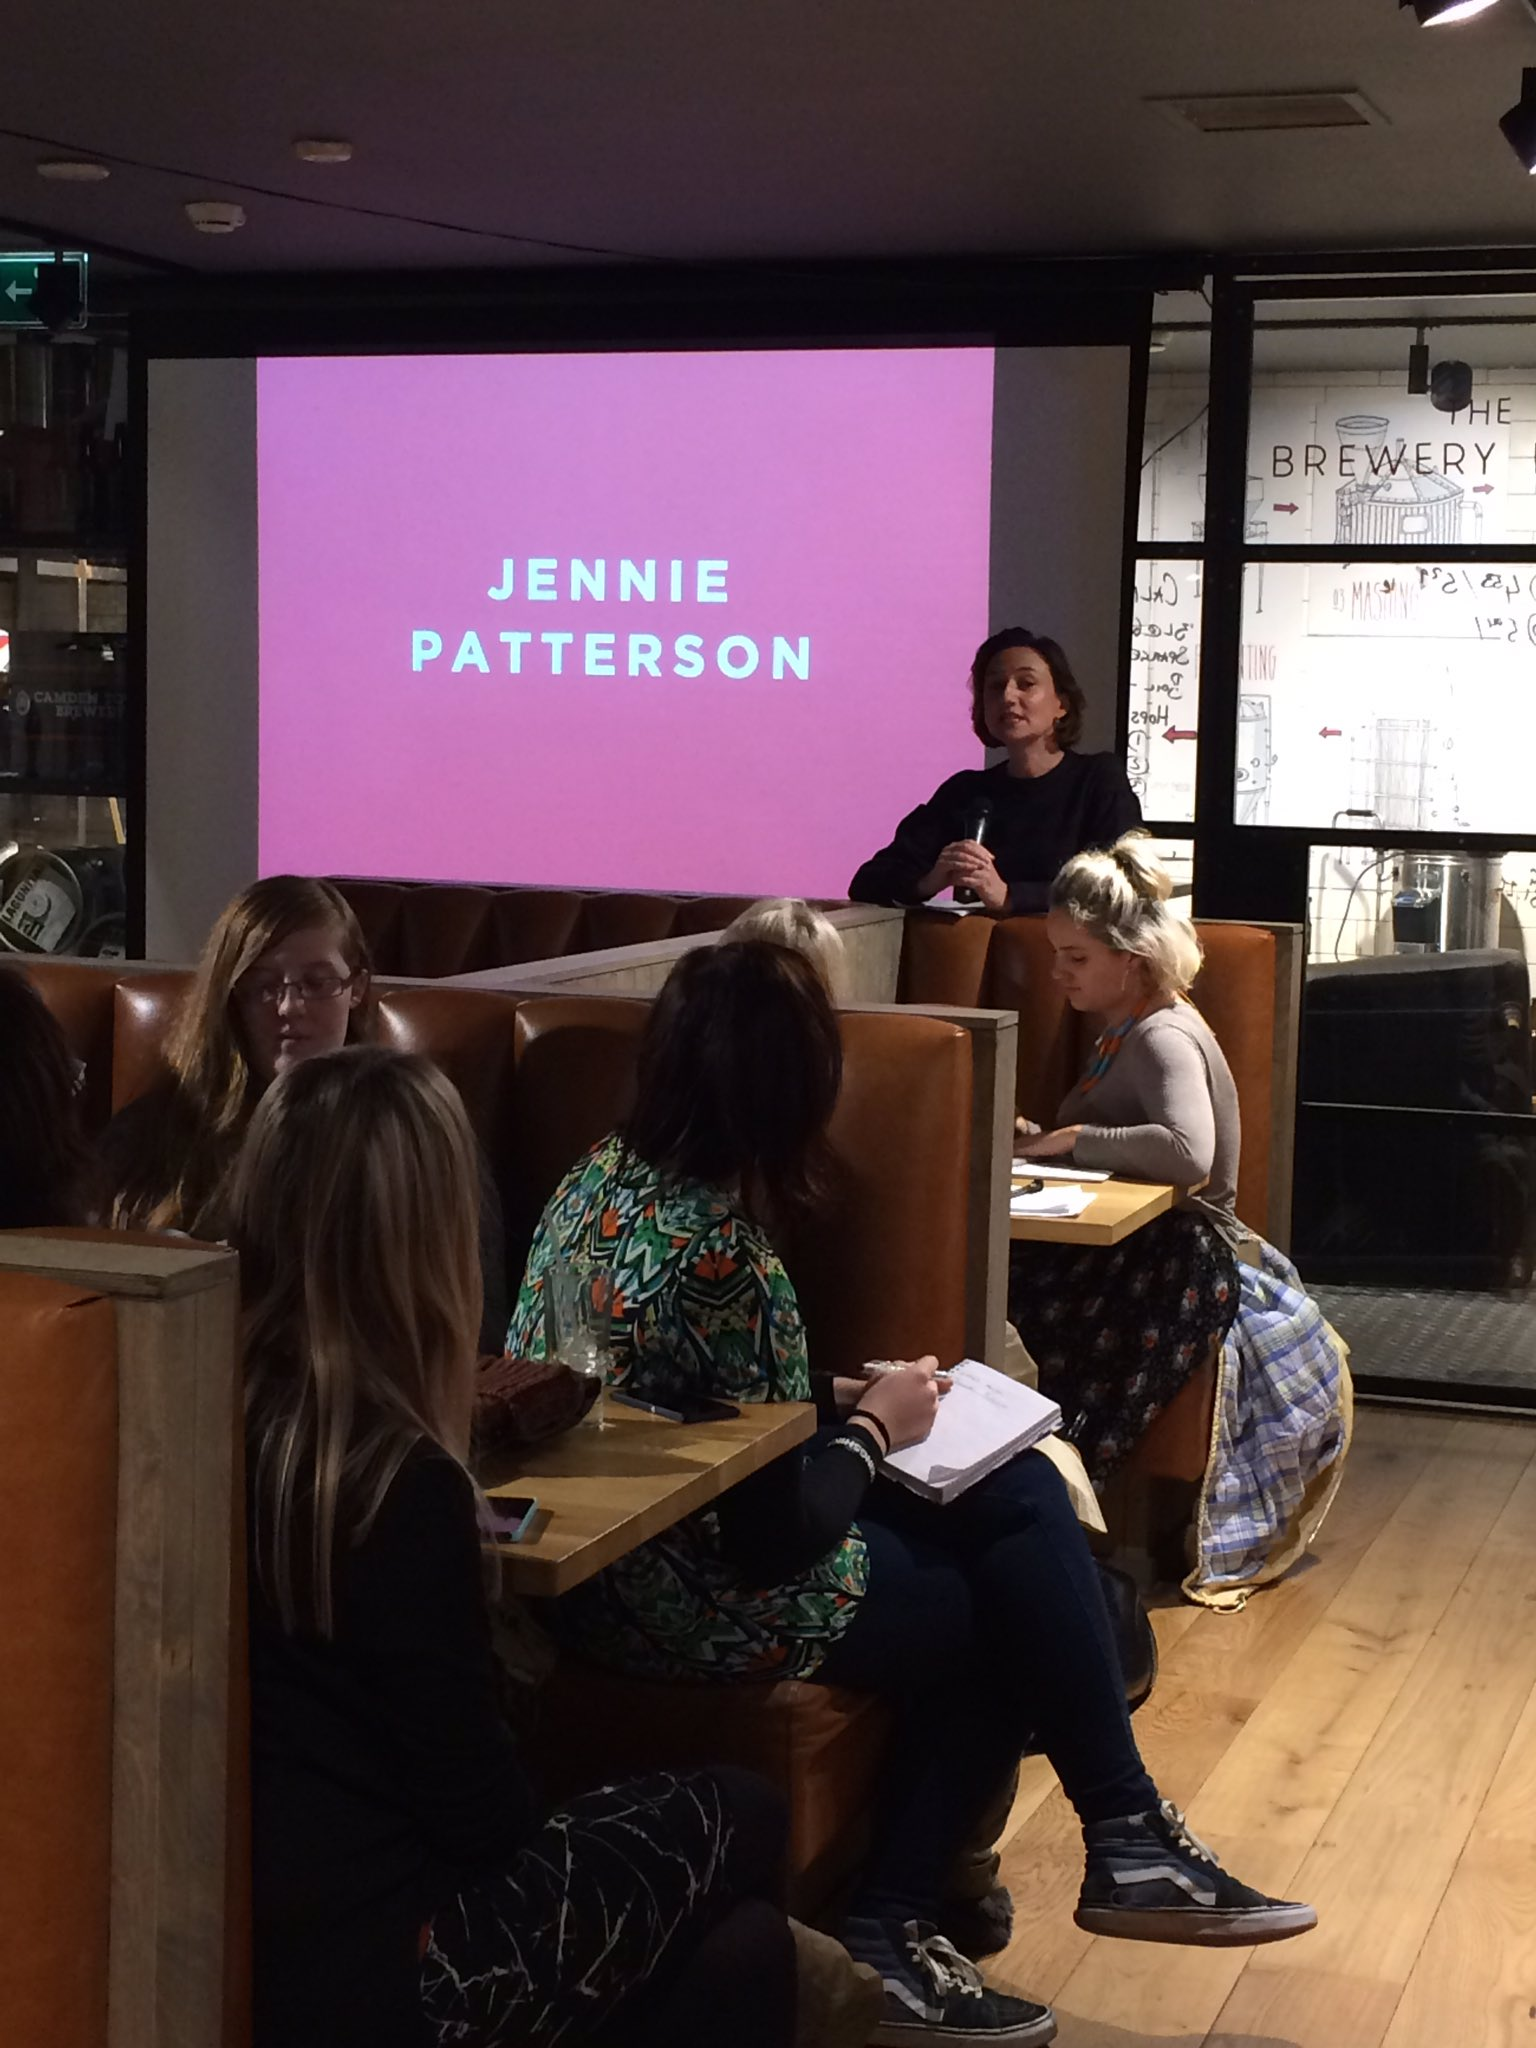 Our 3rd speaker is @jennie_patt to talk about working in PR and promoting Scottish design to the media #MakeShare https://t.co/UySFYIw9Pa